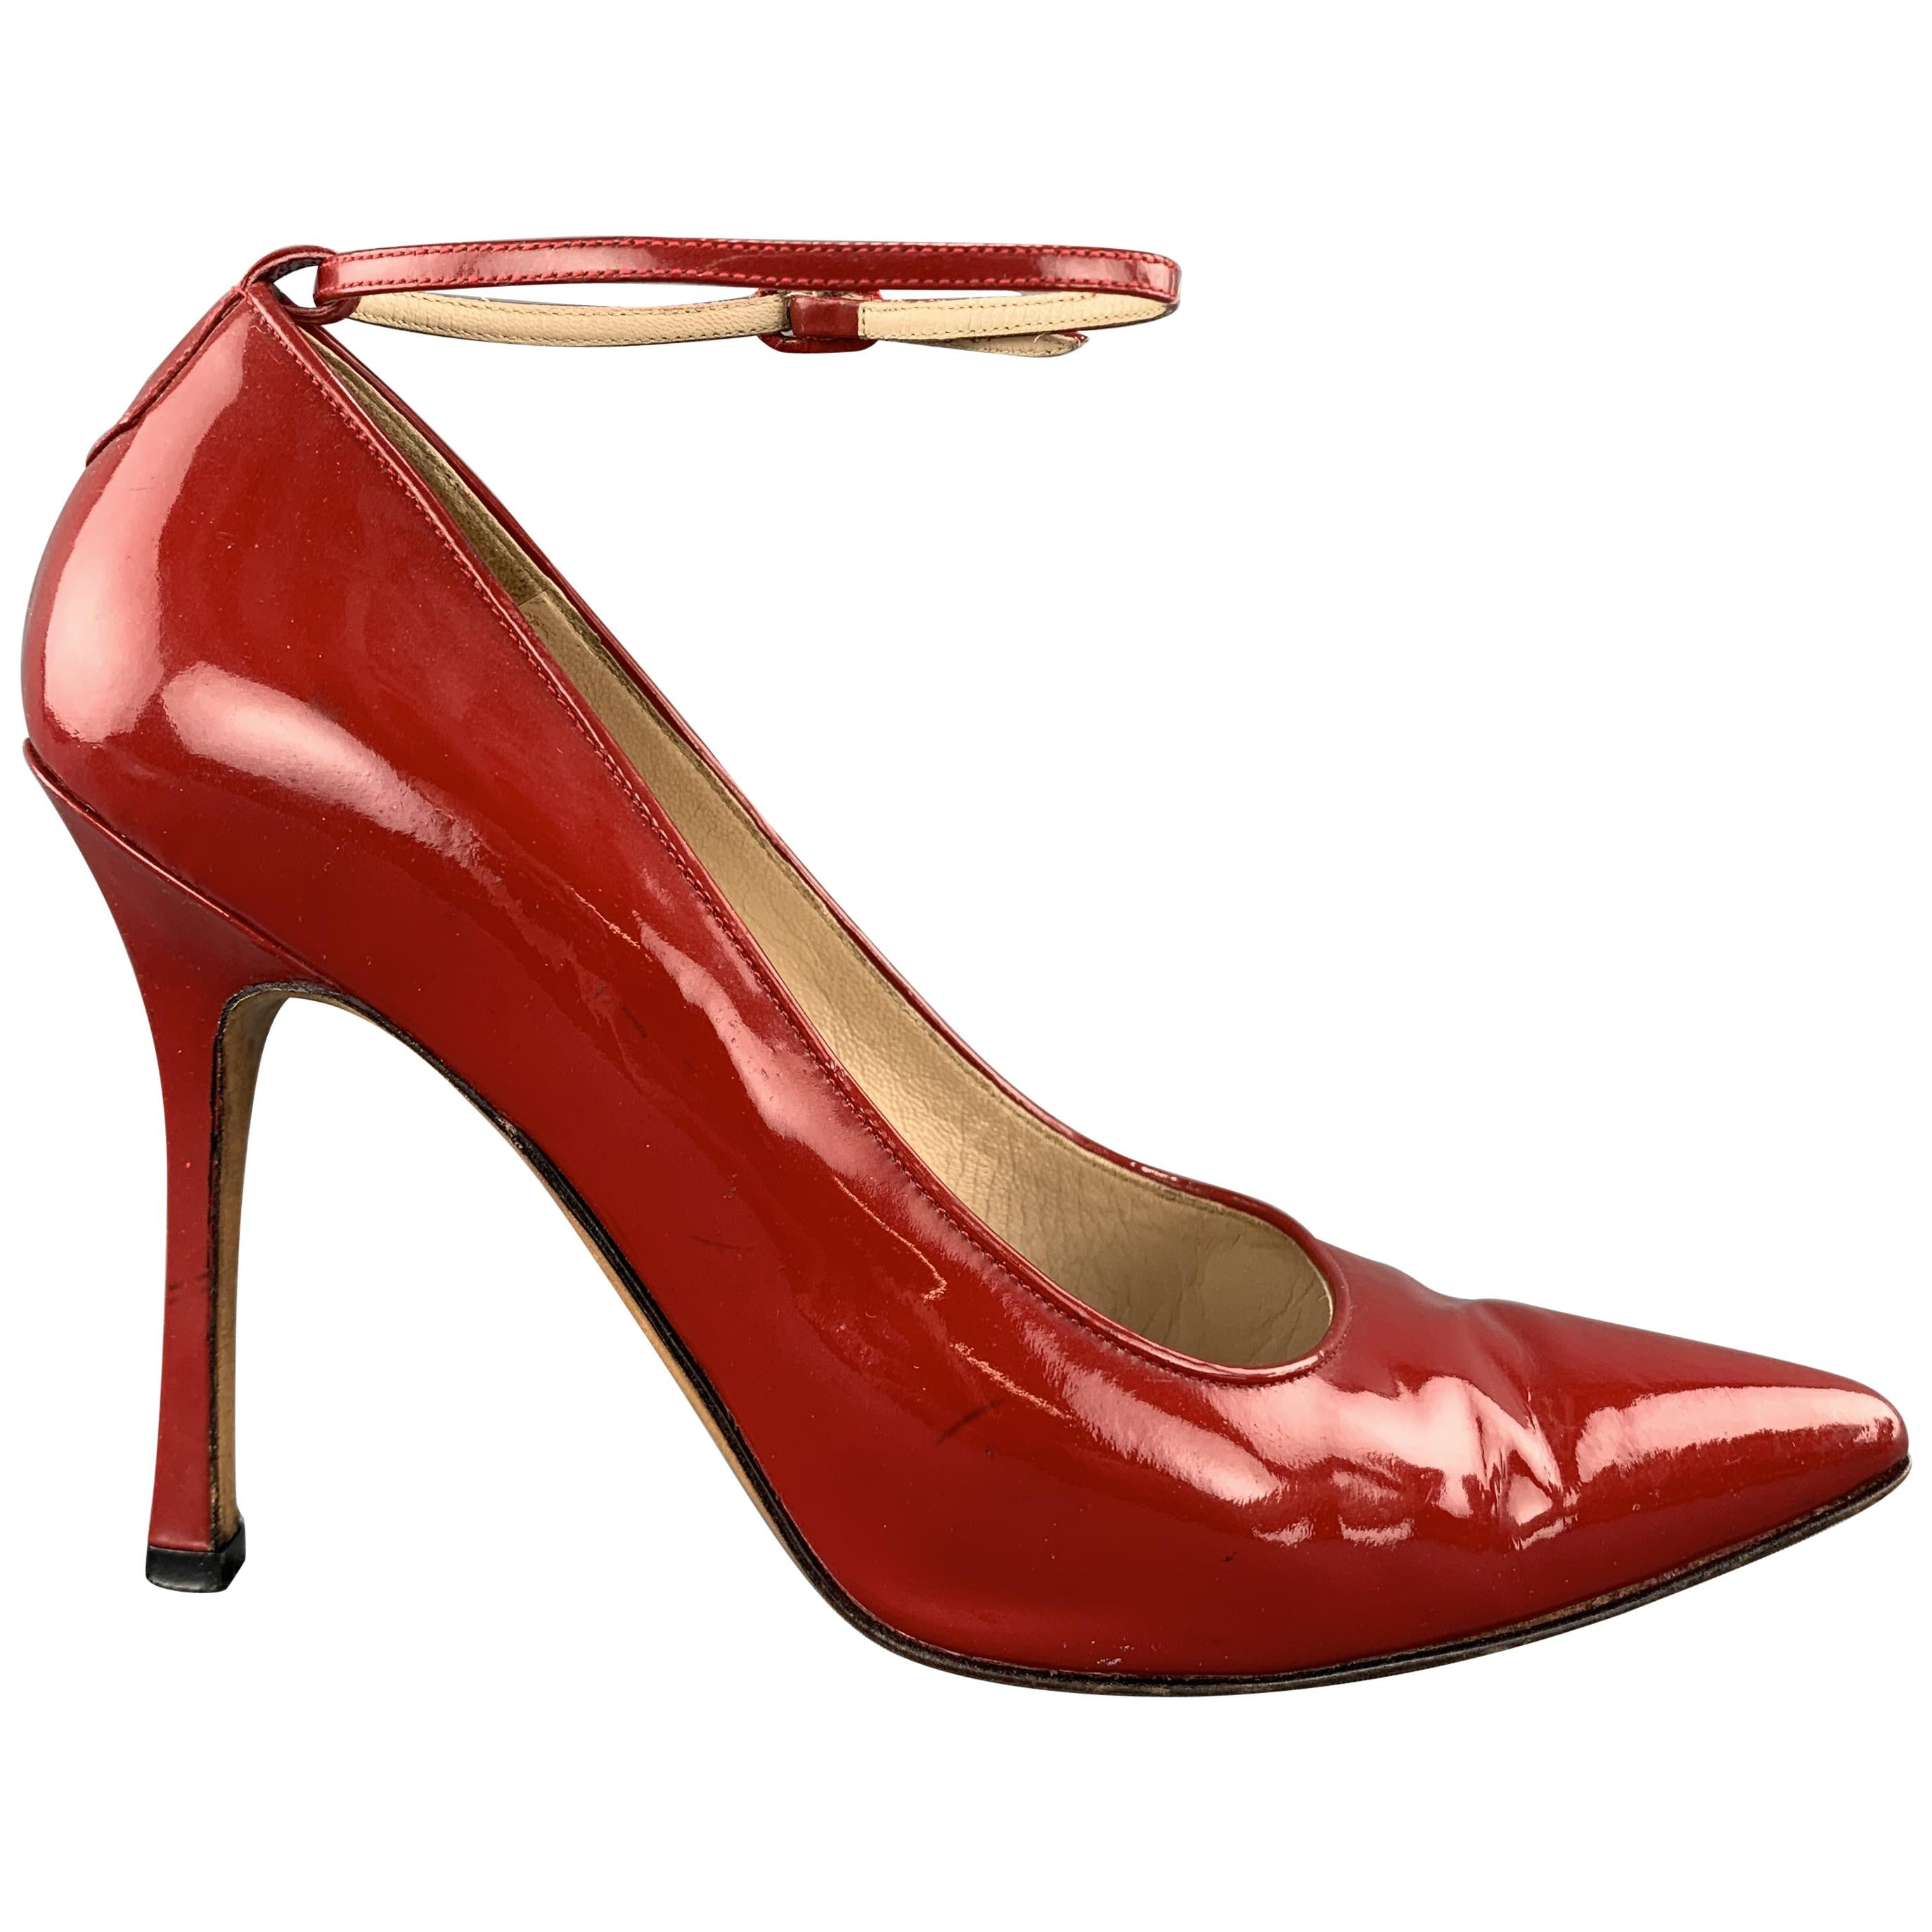 MANOLO BLAHNIK Size 7 Red Patent Leather Ankle Strap Pointed Pump